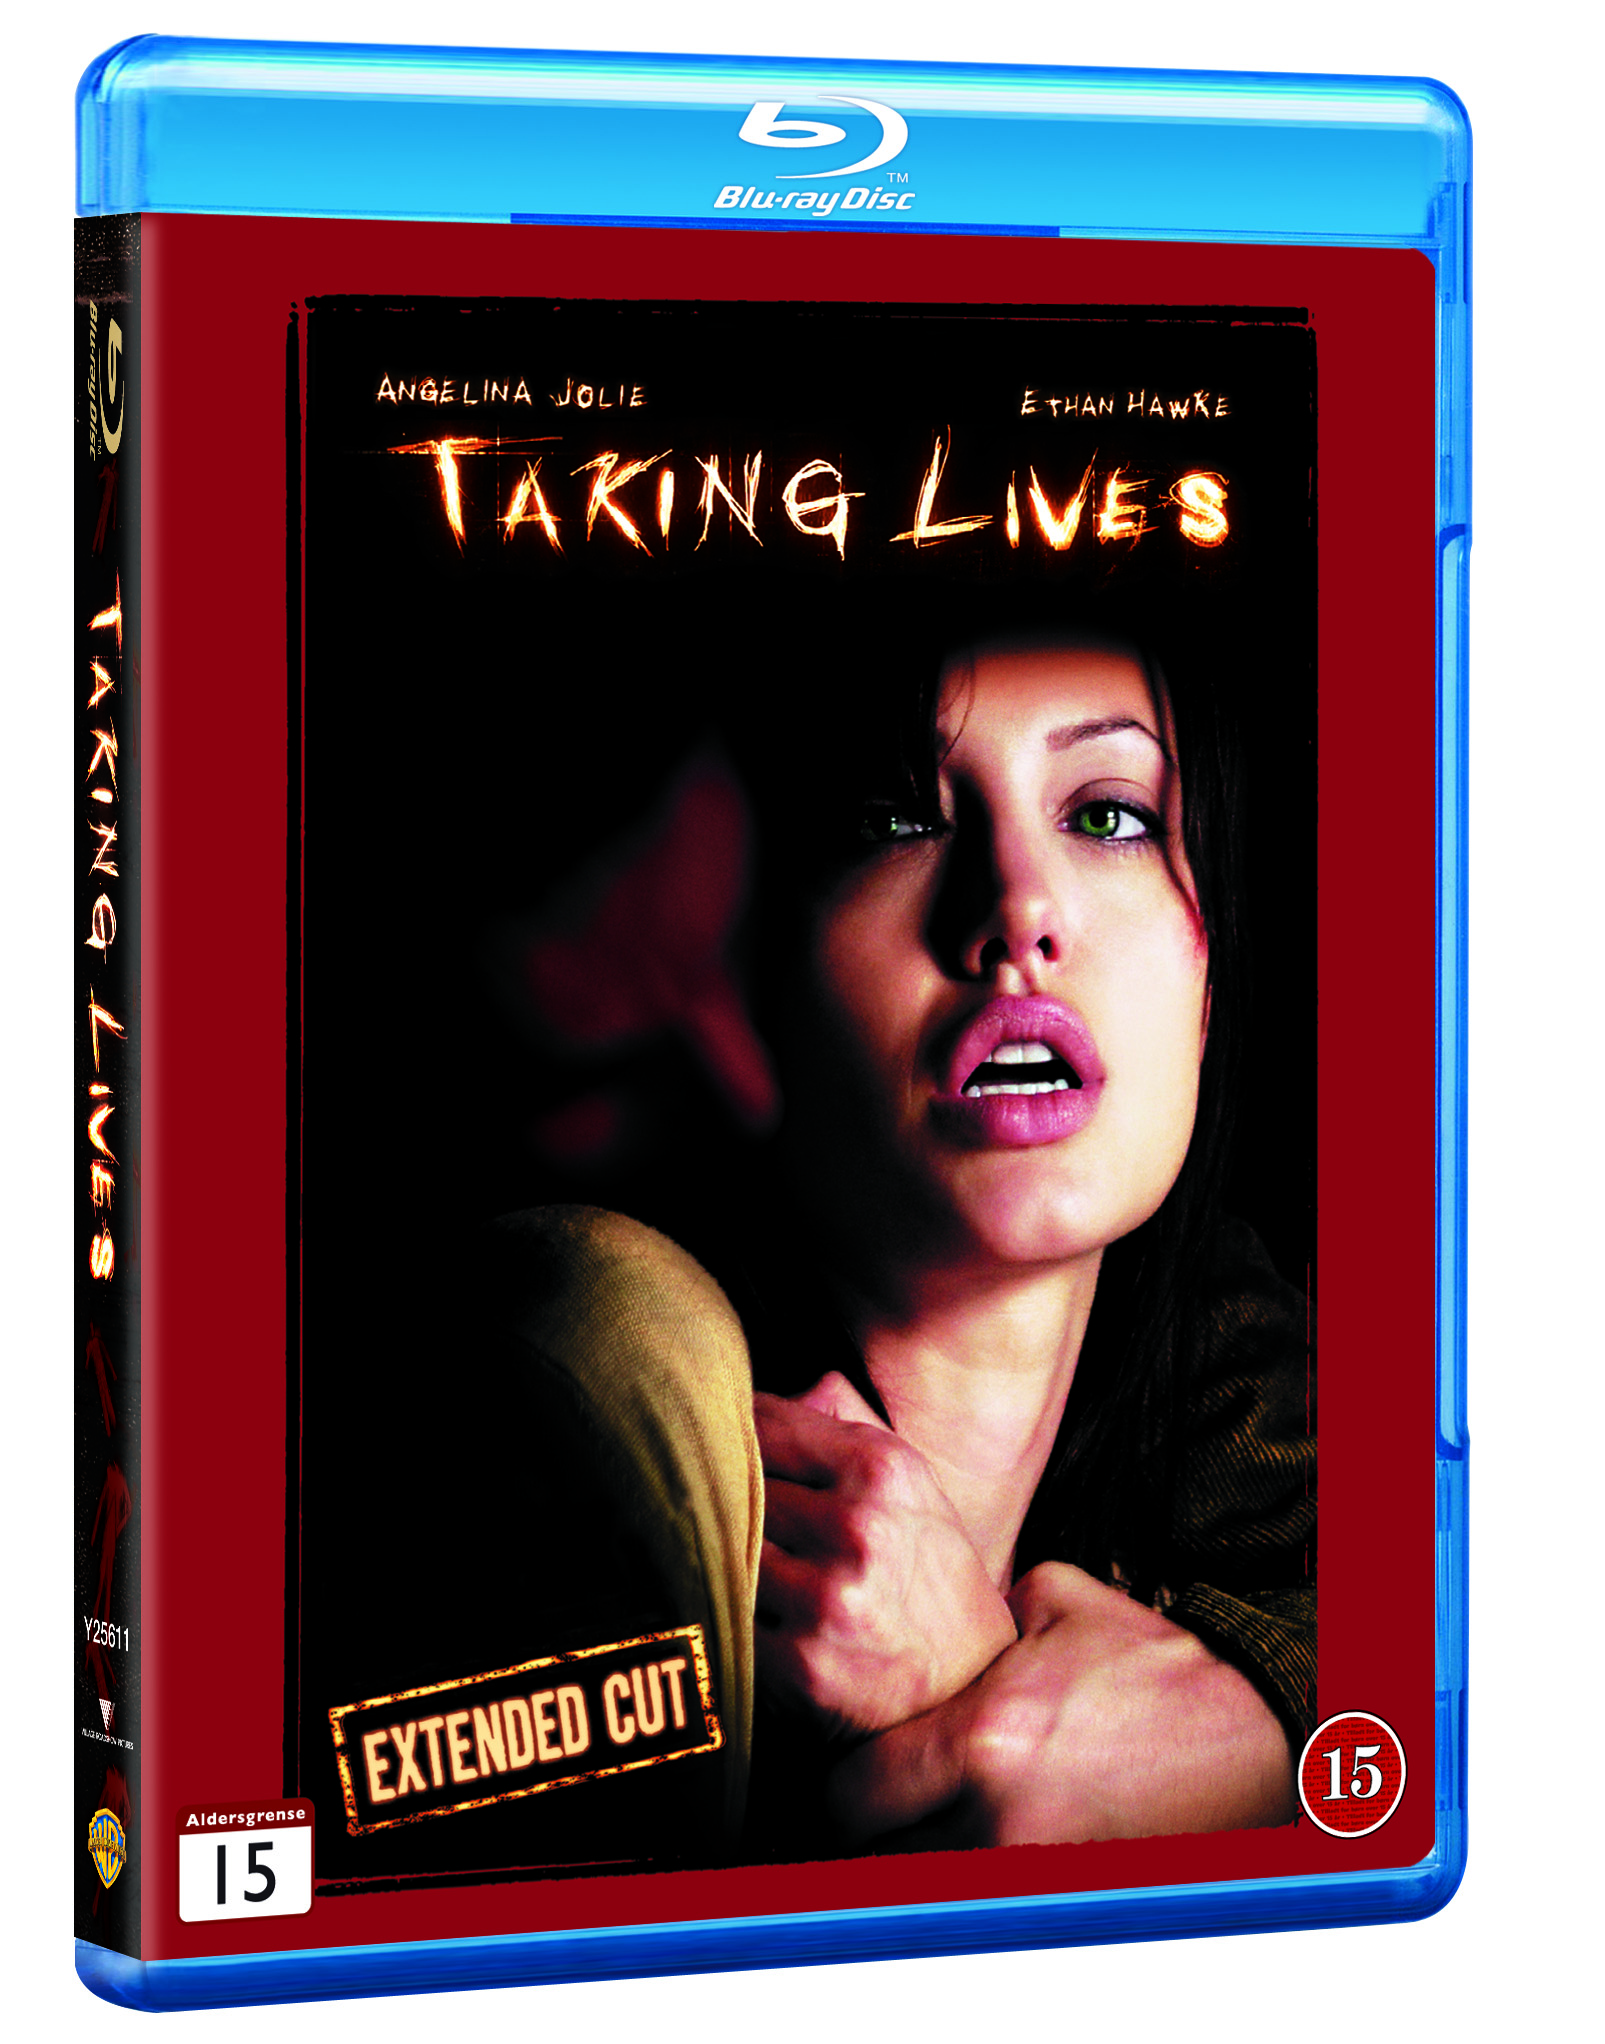 Taking Lives: Extended Cut - Blu Ray